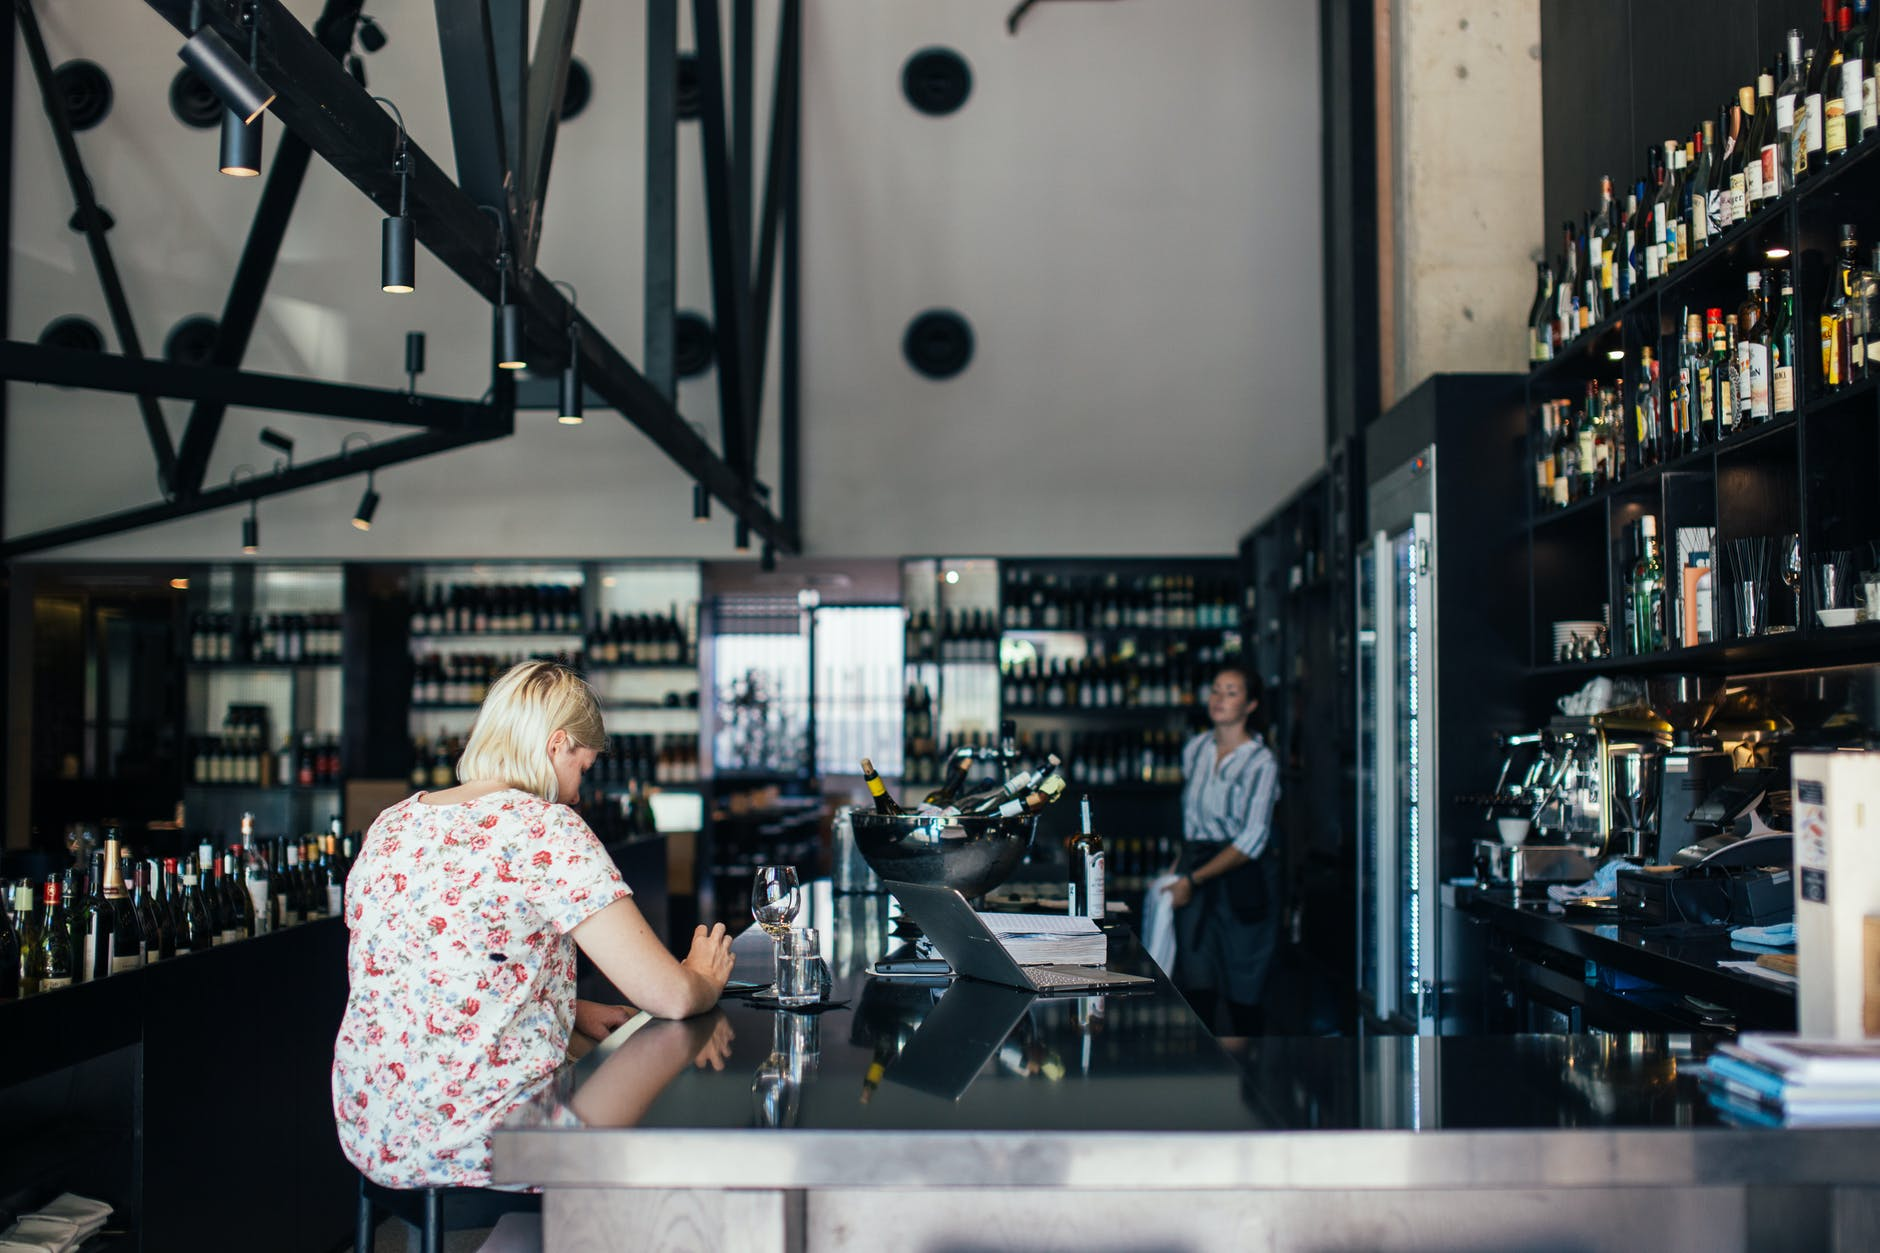 woman sitting at bar counter in restaurant